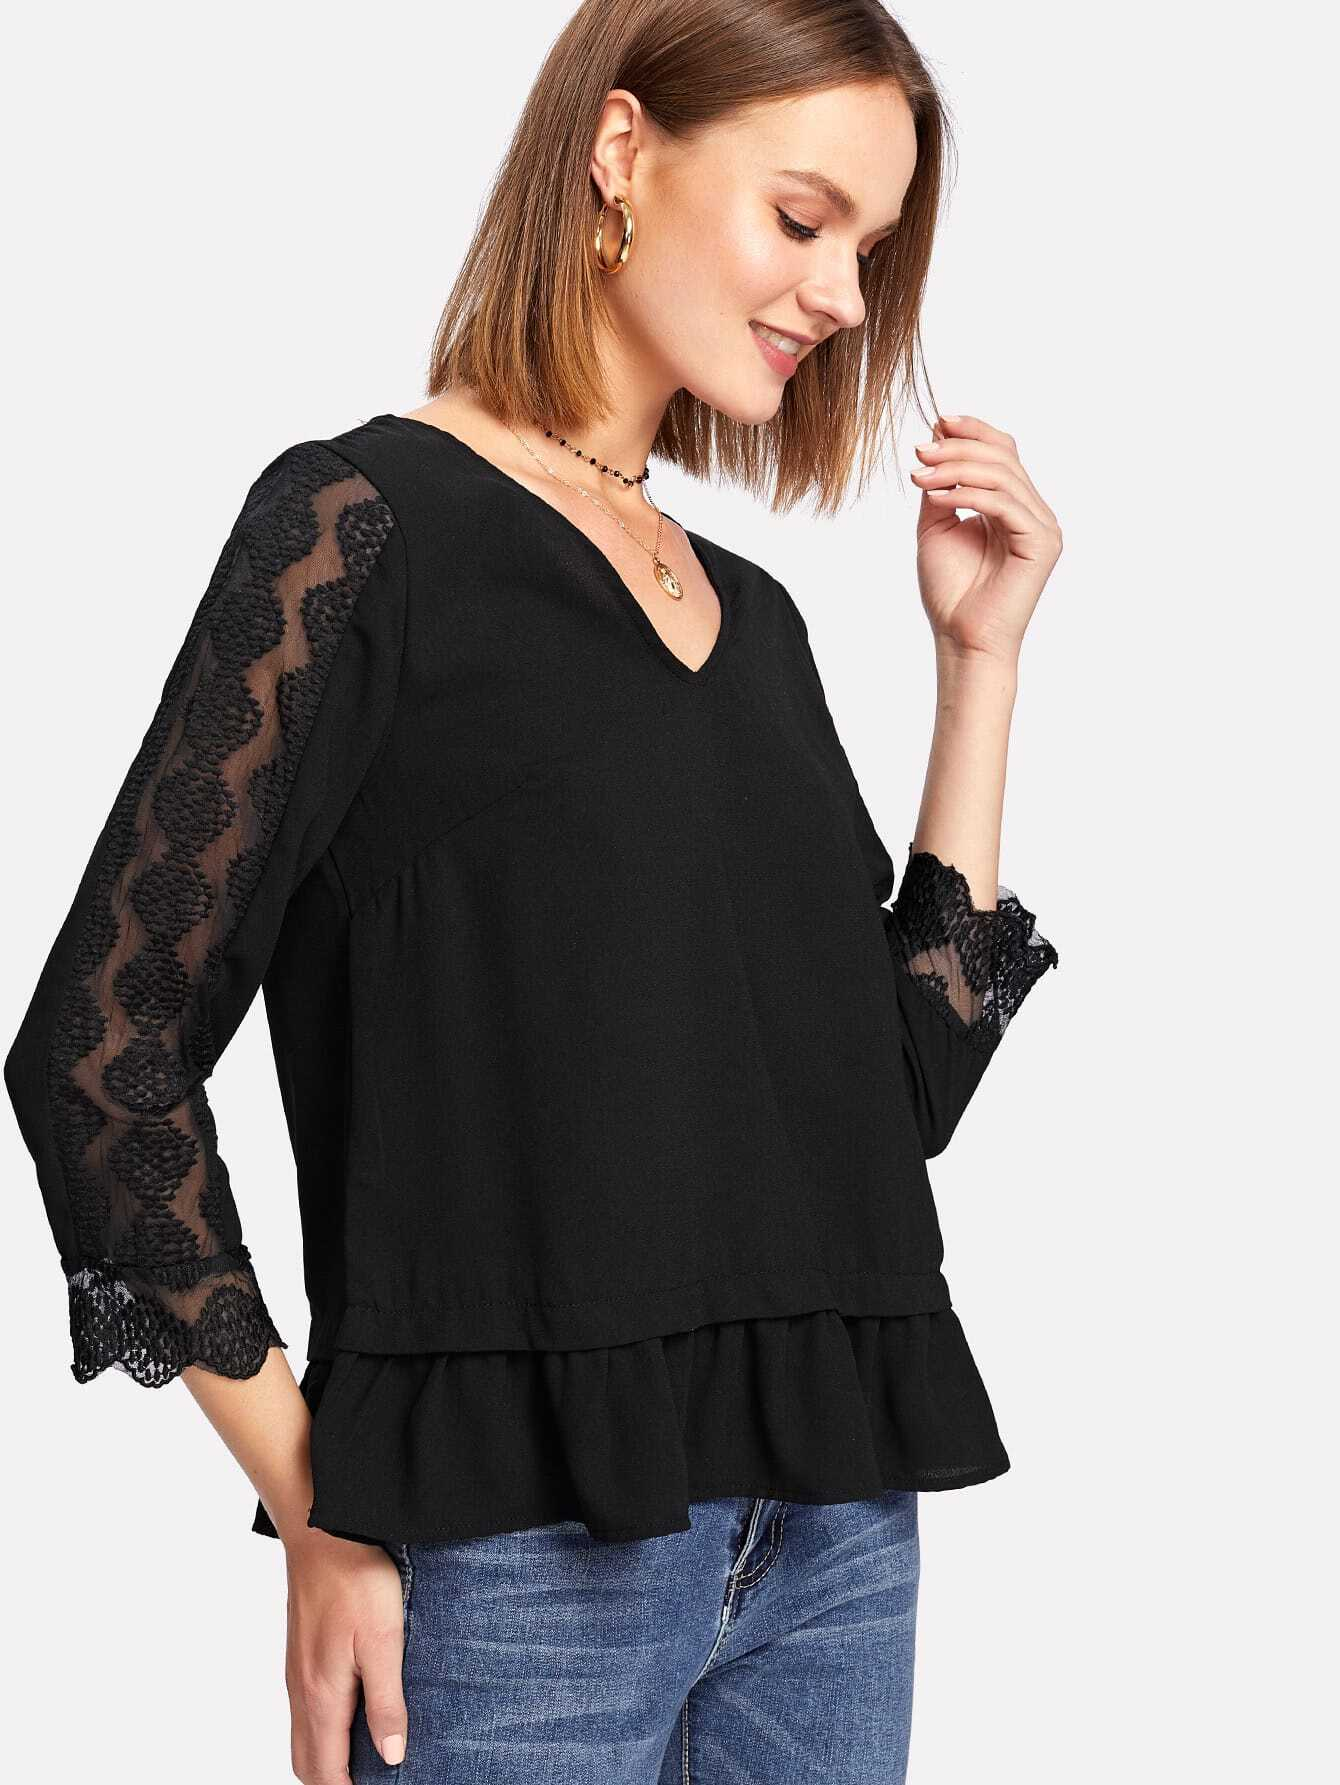 Lace Insert Sleeve Ruffle Hem Top lace insert solid top